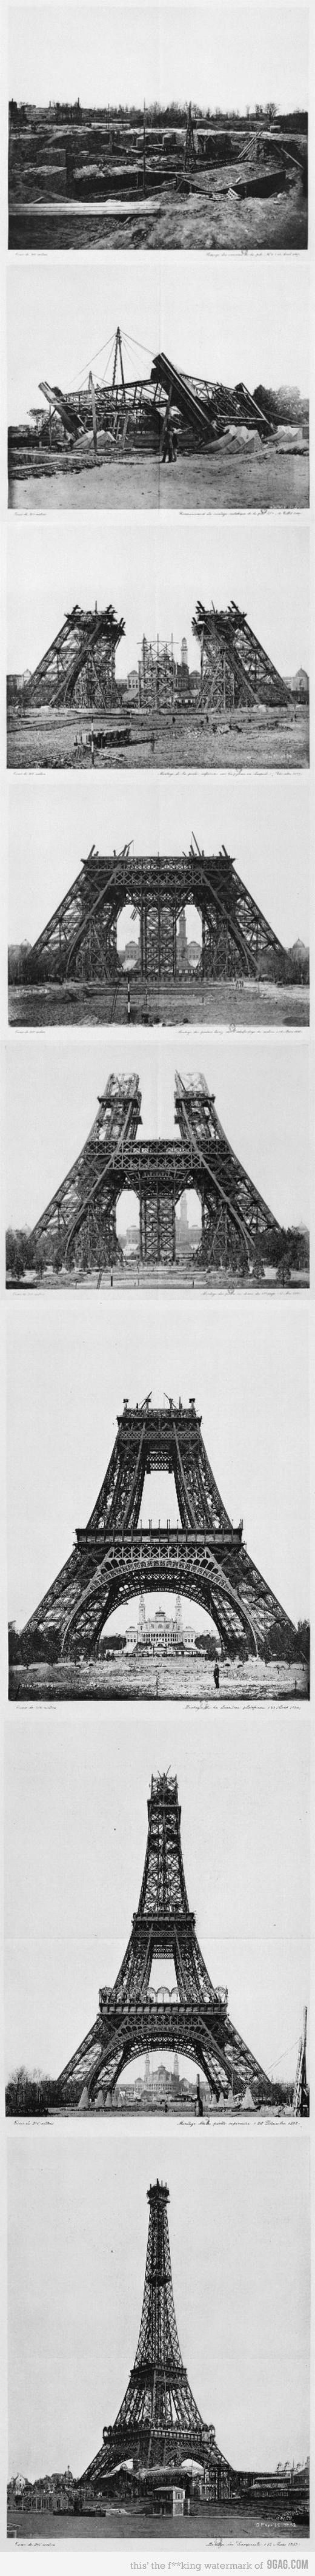 Construction of the Eiffel Tower.